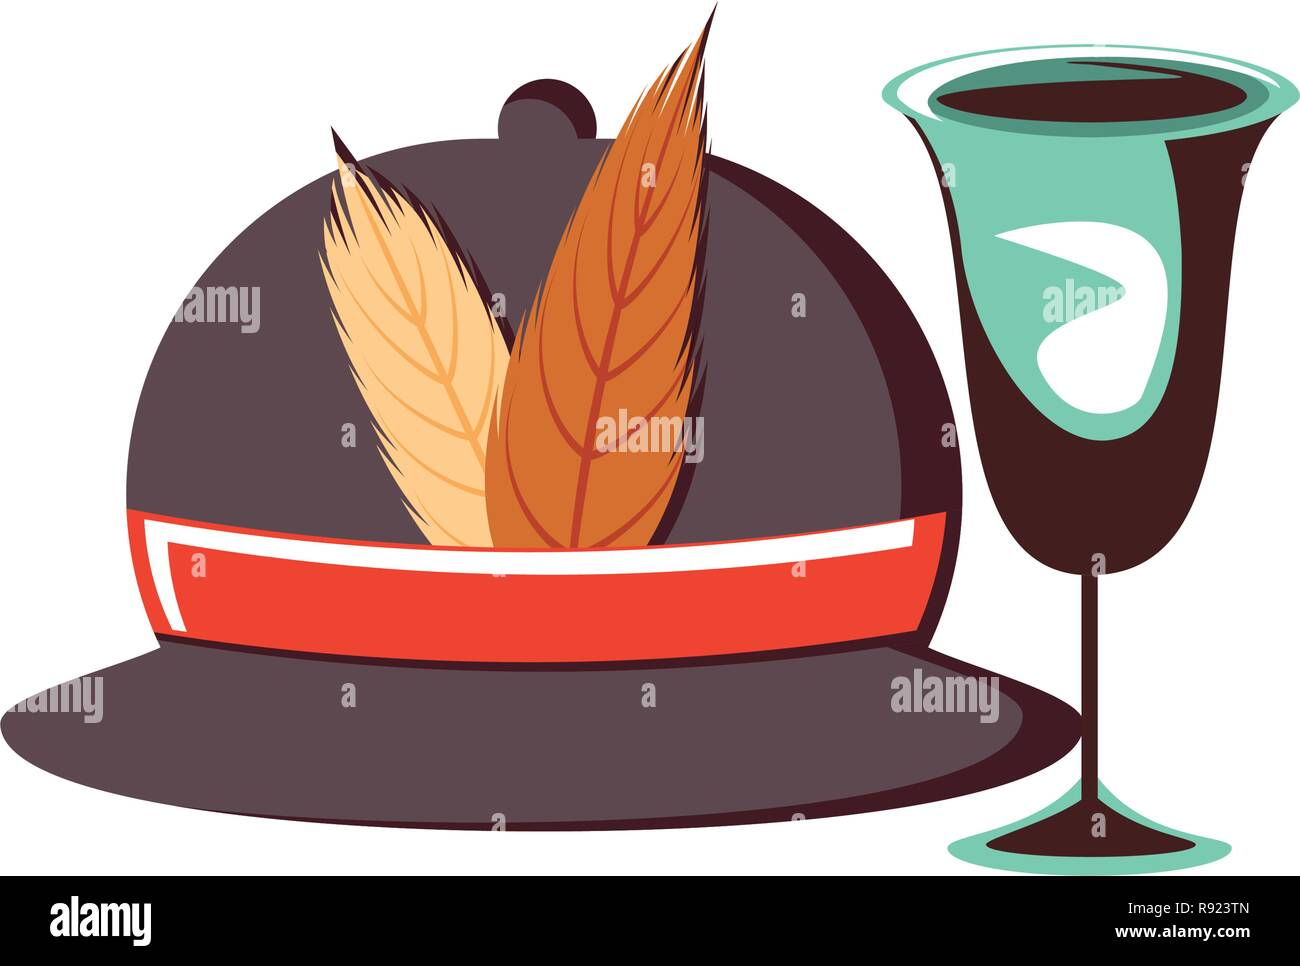 hunter hat with cup isolated icon vector illustration design - Stock Image